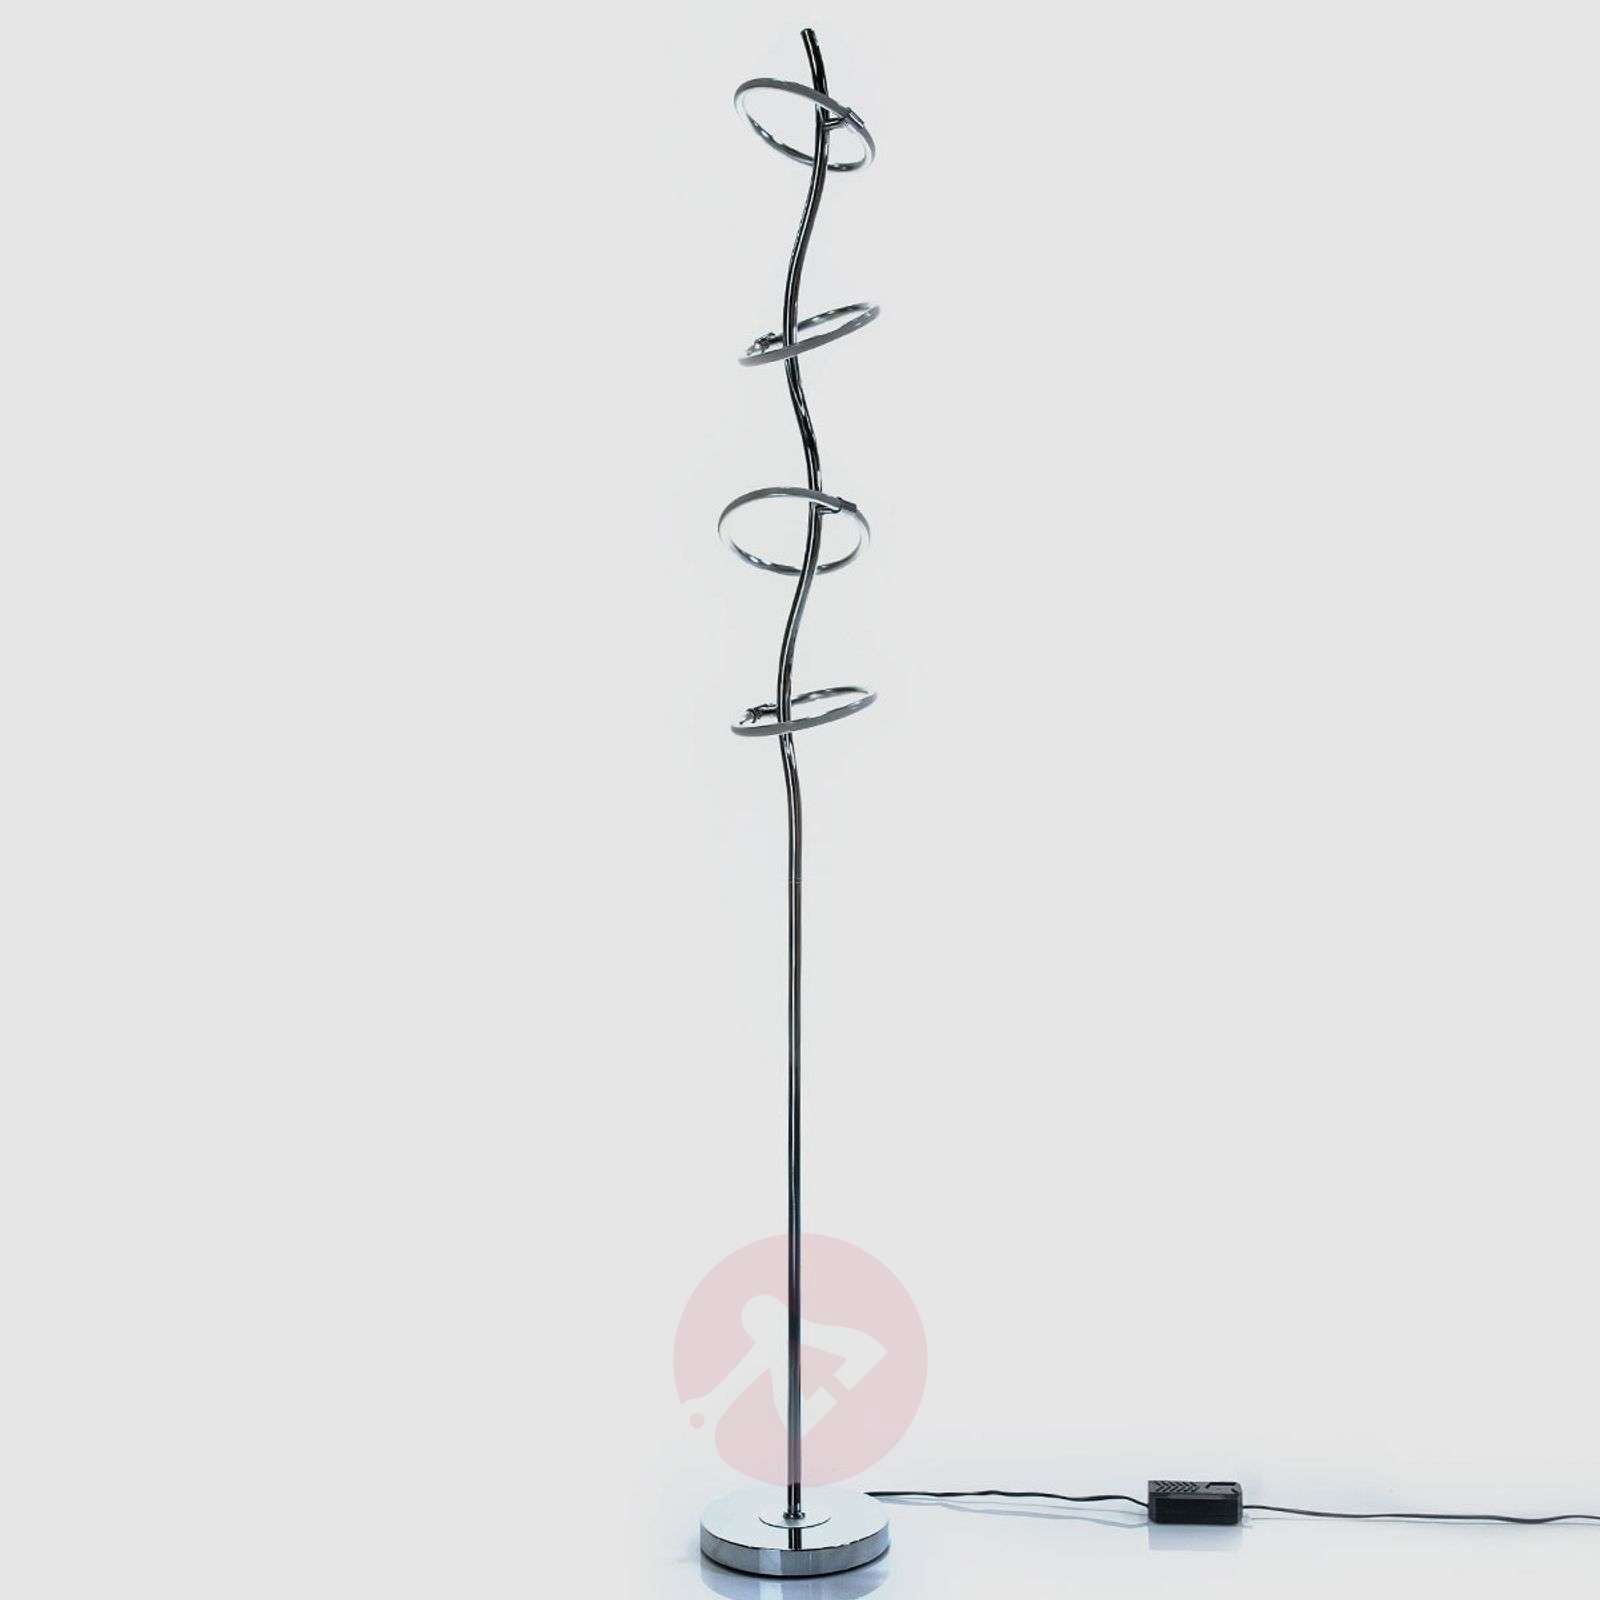 Led Floor Lamp Olympus With Dimmer Four Bulb Lights Ie